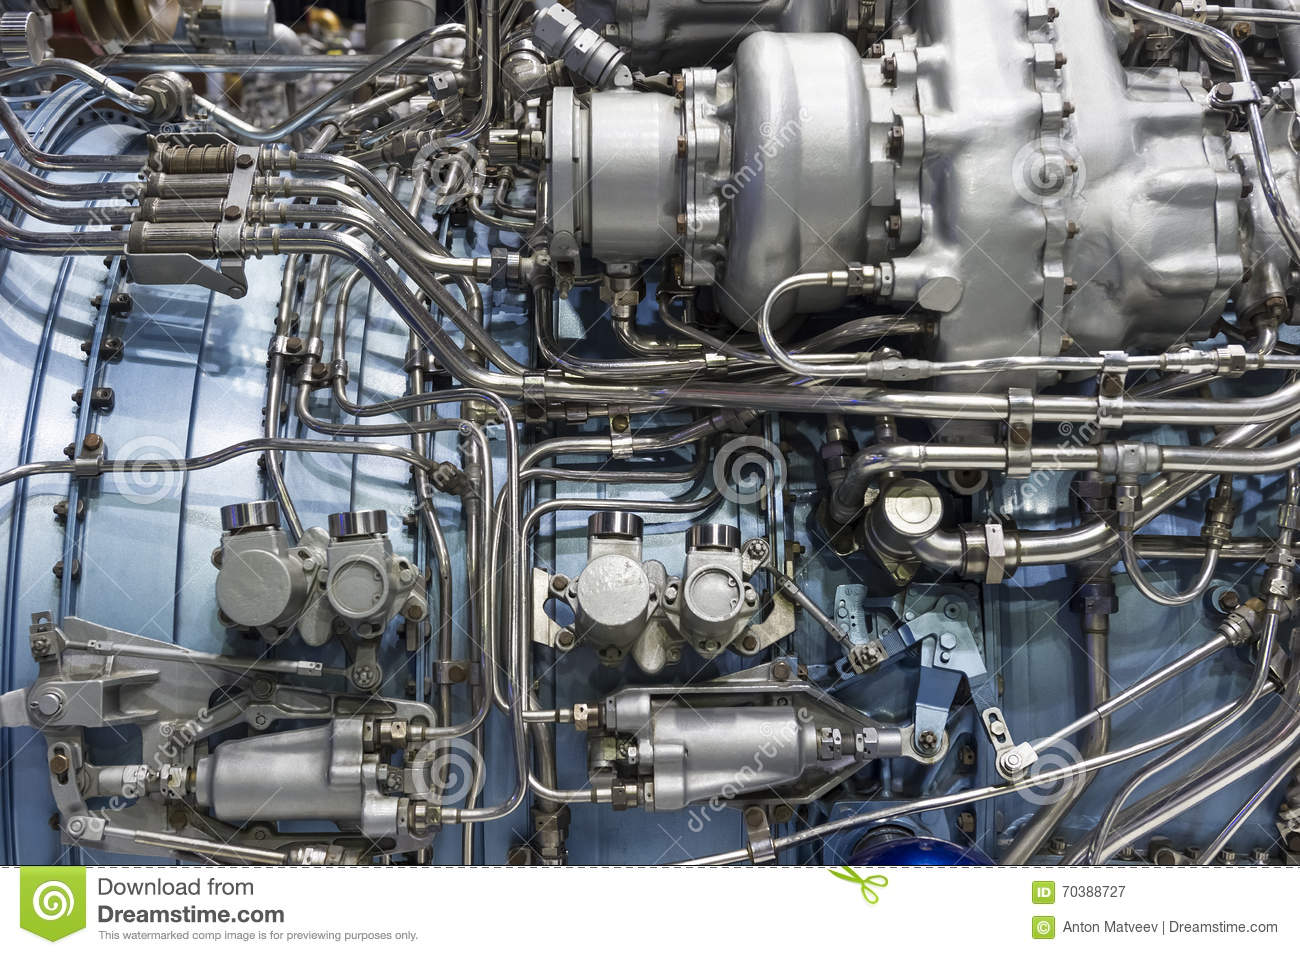 Jet engine detail stock image. Image of combustion, equipment - 70388727